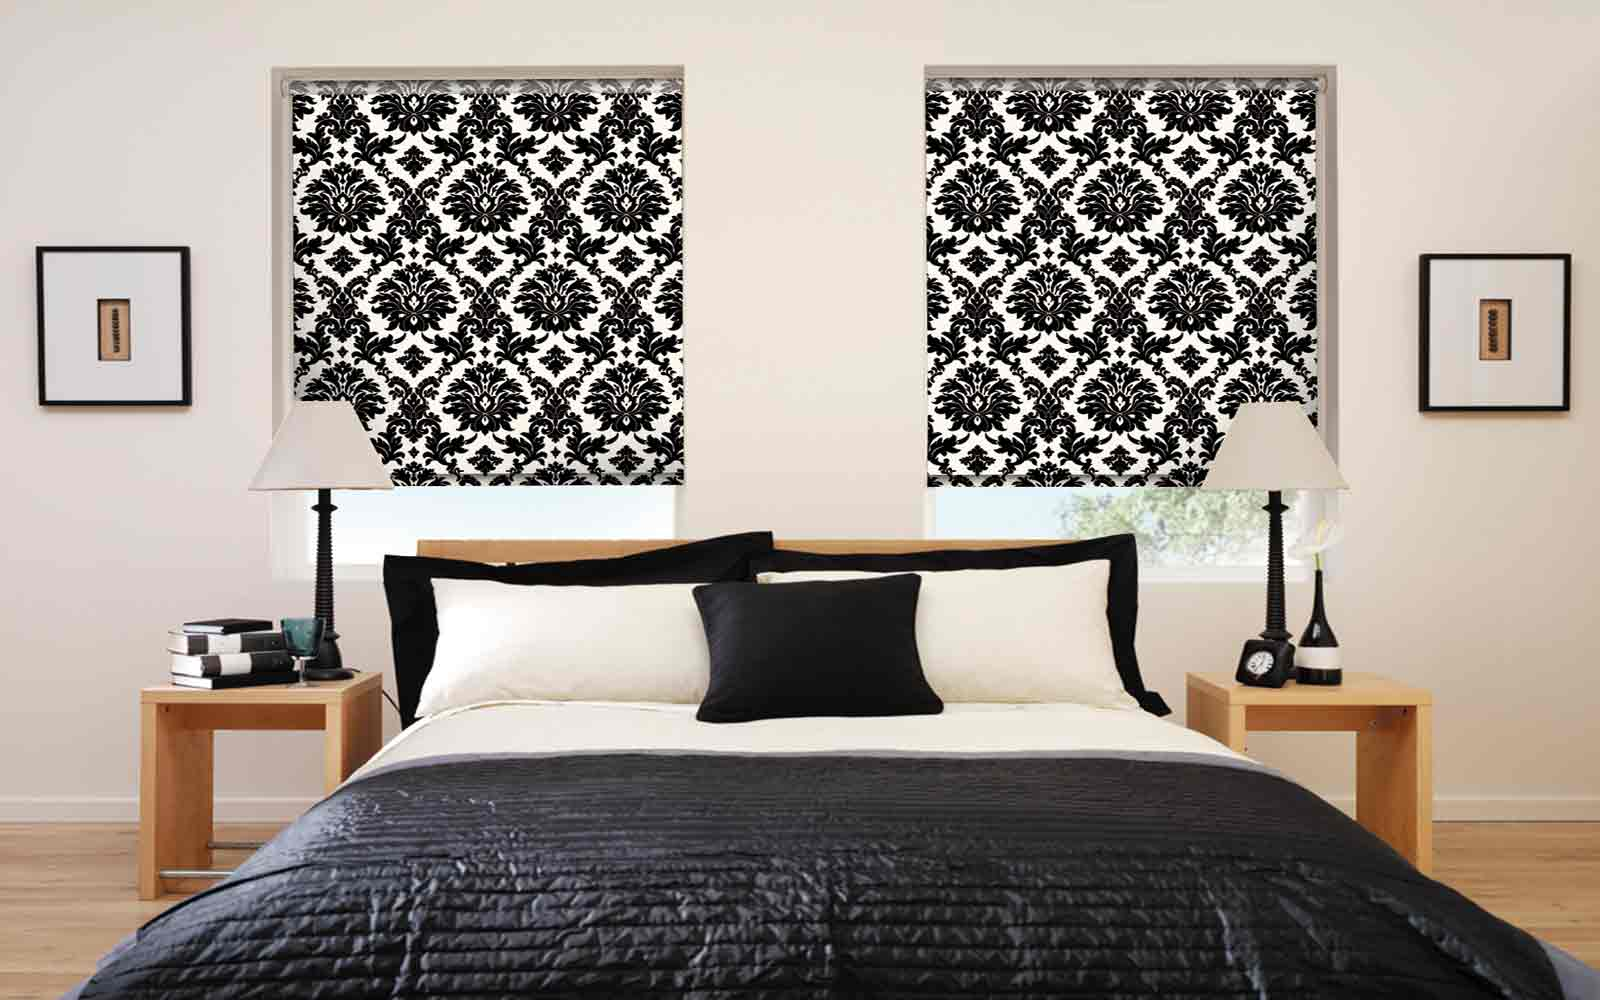 Patterned Roller blinds in the bedroom